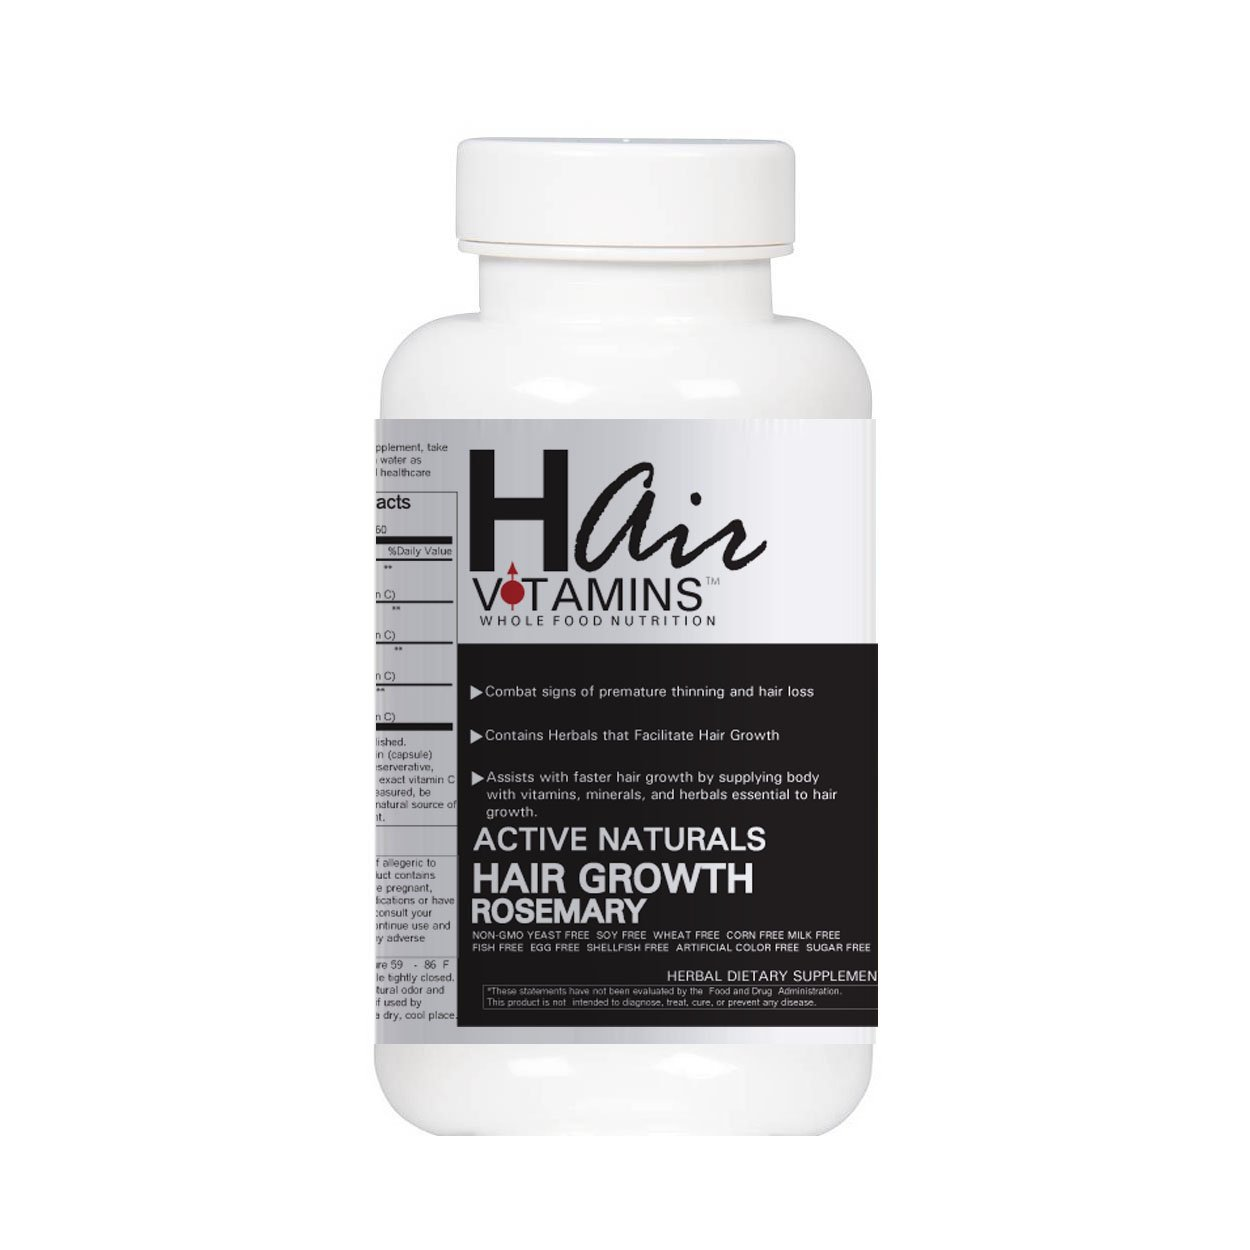 Rosemary Super Speed Hair Growth Support Capsules